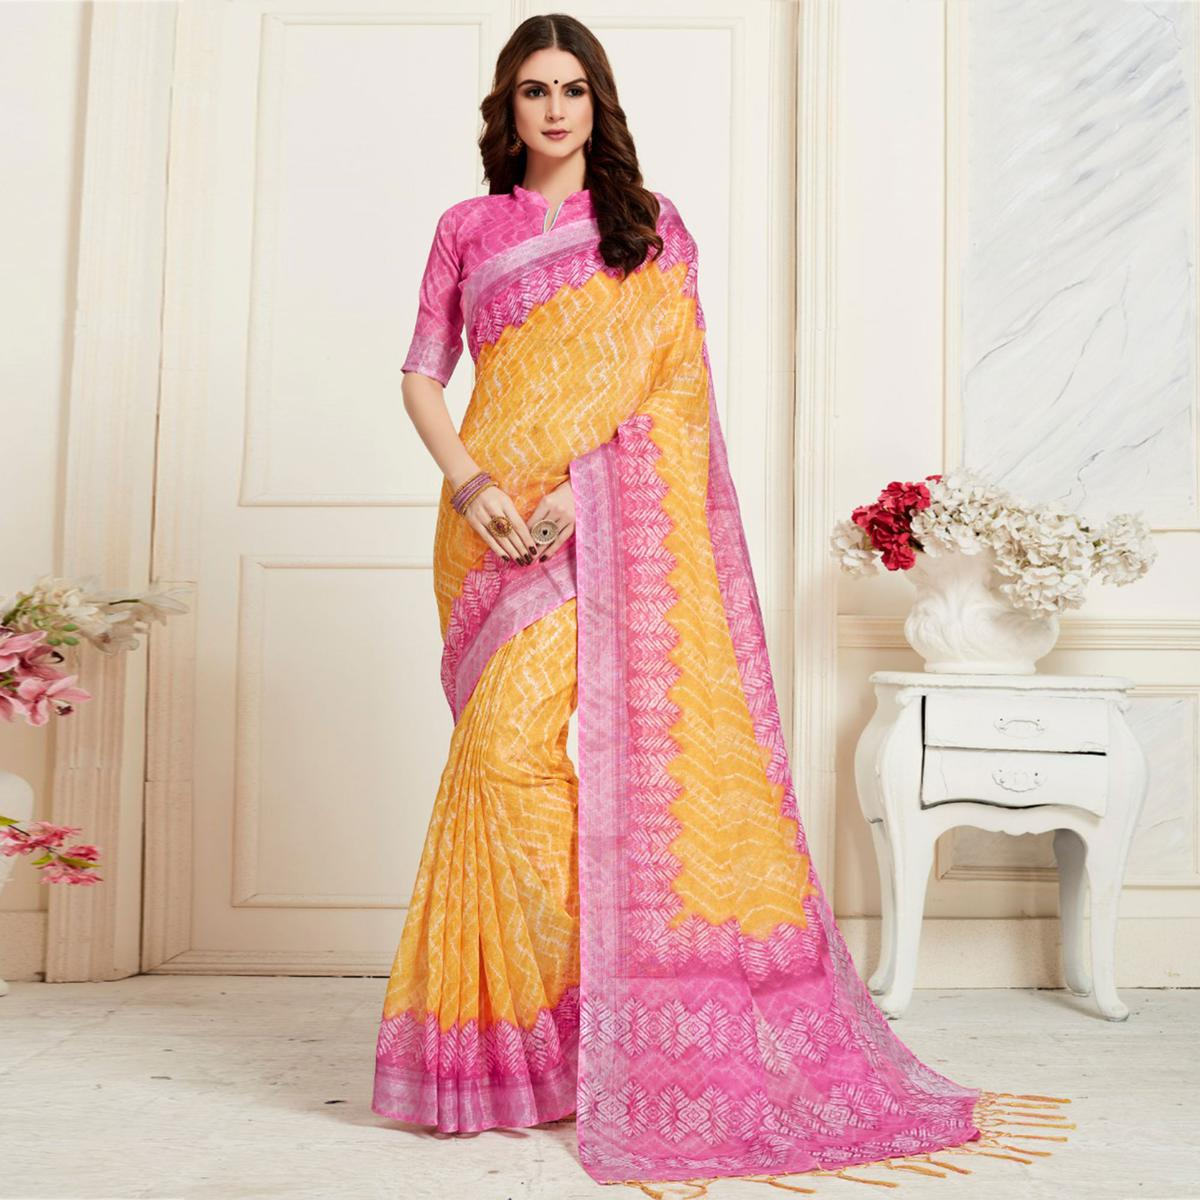 Groovy Yellow Colored Casual Chervon Digital Printed Linen Saree